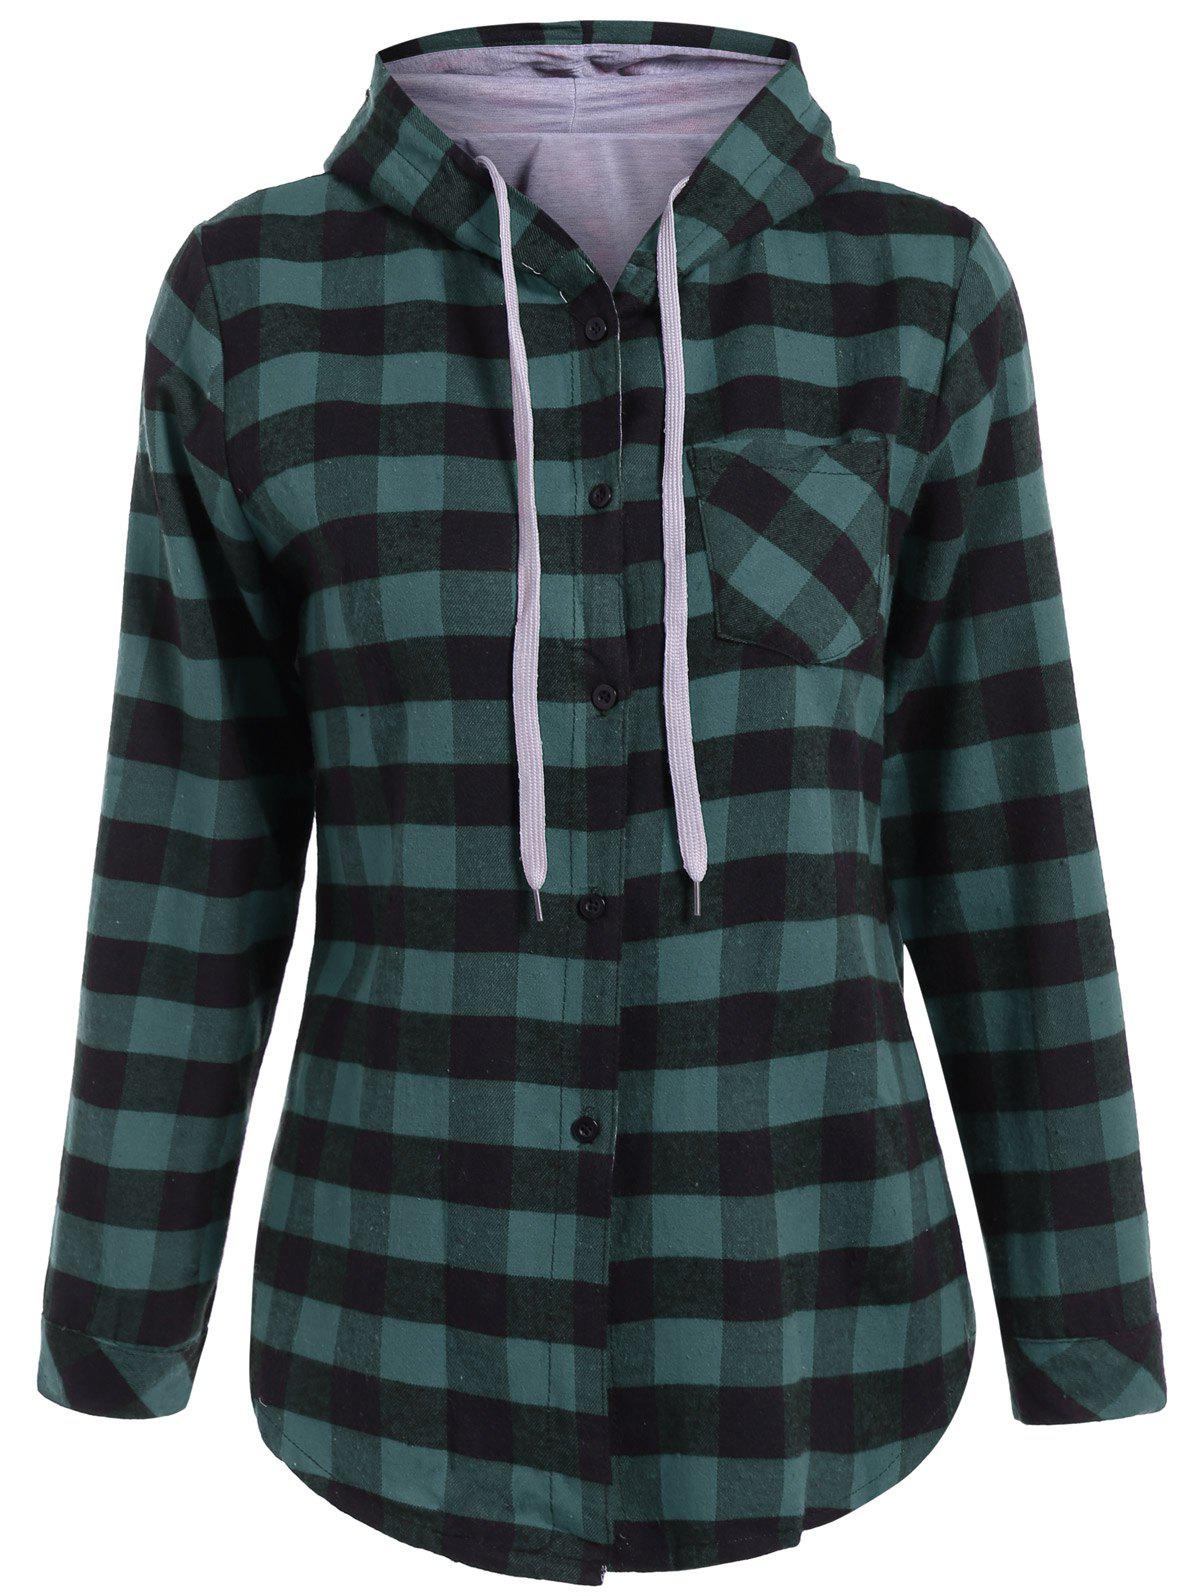 Plaid Pocket Design Buttoned HoodieWOMEN<br><br>Size: 5XL; Color: BLACK AND GREEN; Material: Polyester; Shirt Length: Long; Sleeve Length: Full; Style: Casual; Pattern Style: Plaid; Season: Fall,Spring; Weight: 0.420kg; Package Contents: 1 x Hoodie;